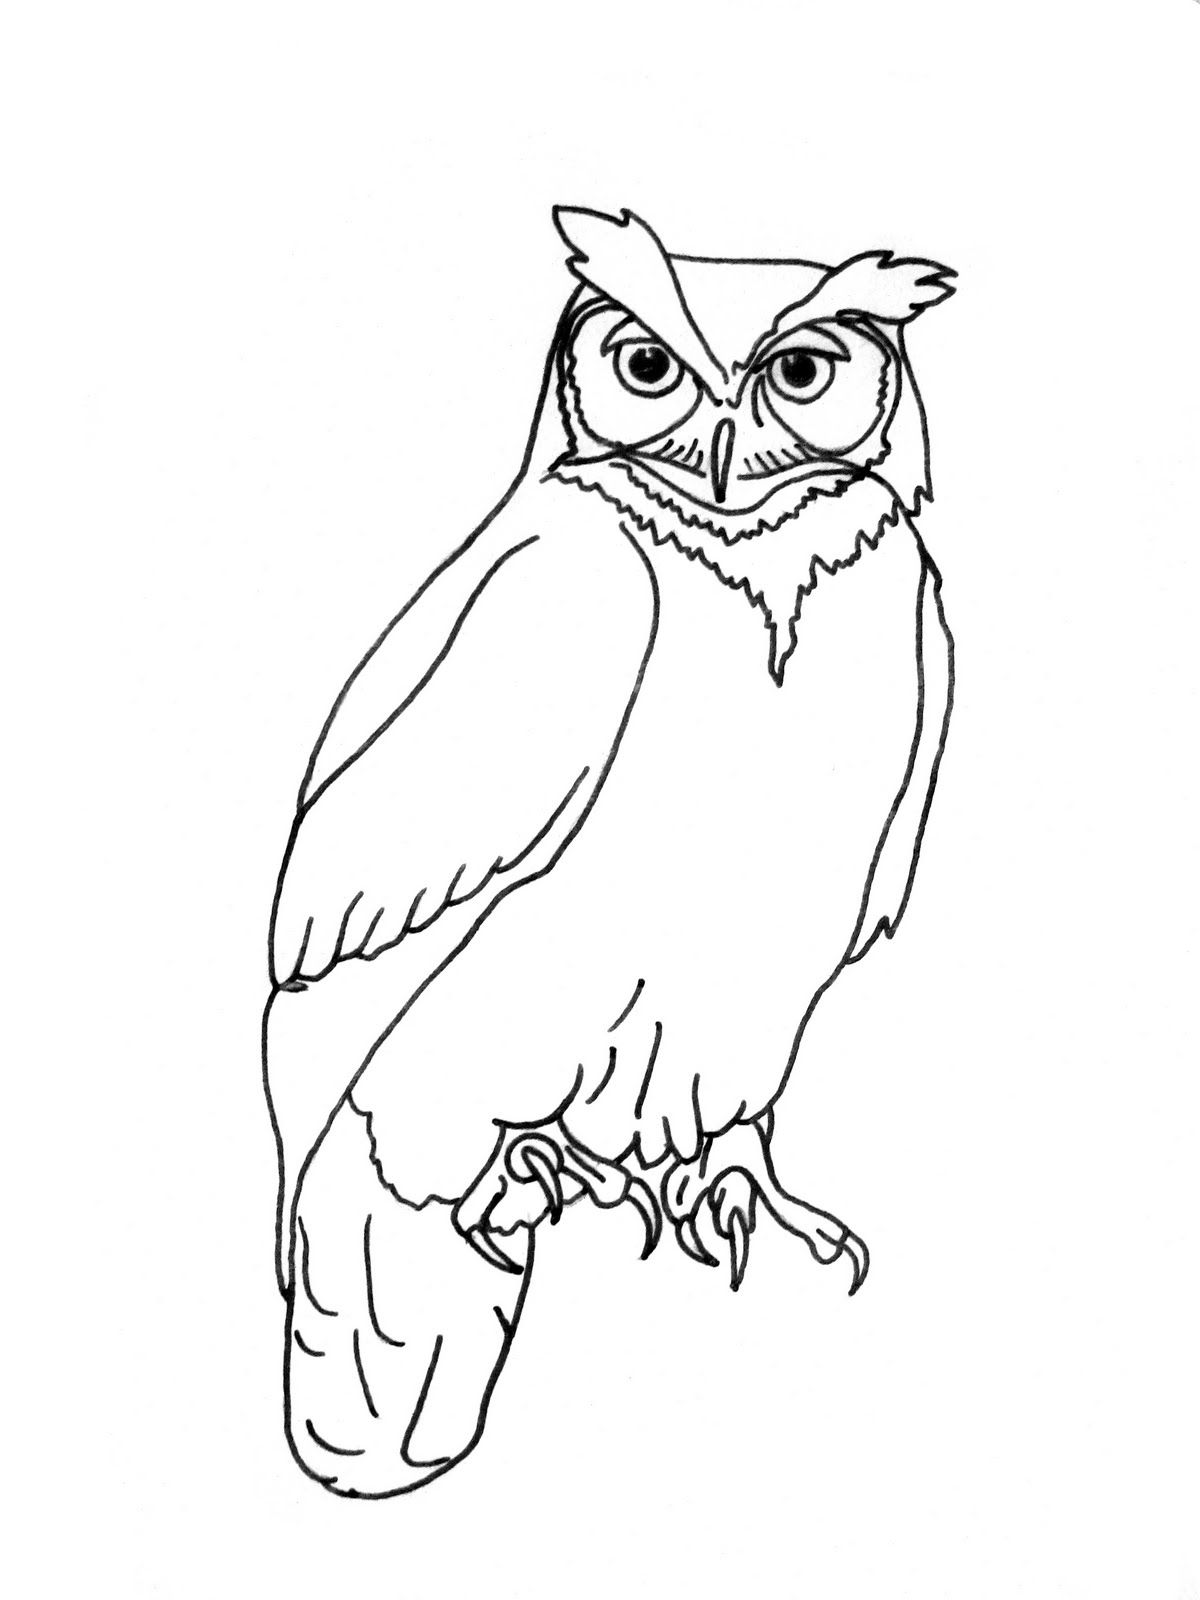 Great grey owl clipart royalty free library Realistic Great Horned Owl Outline | www.galleryhip.com - The ... royalty free library